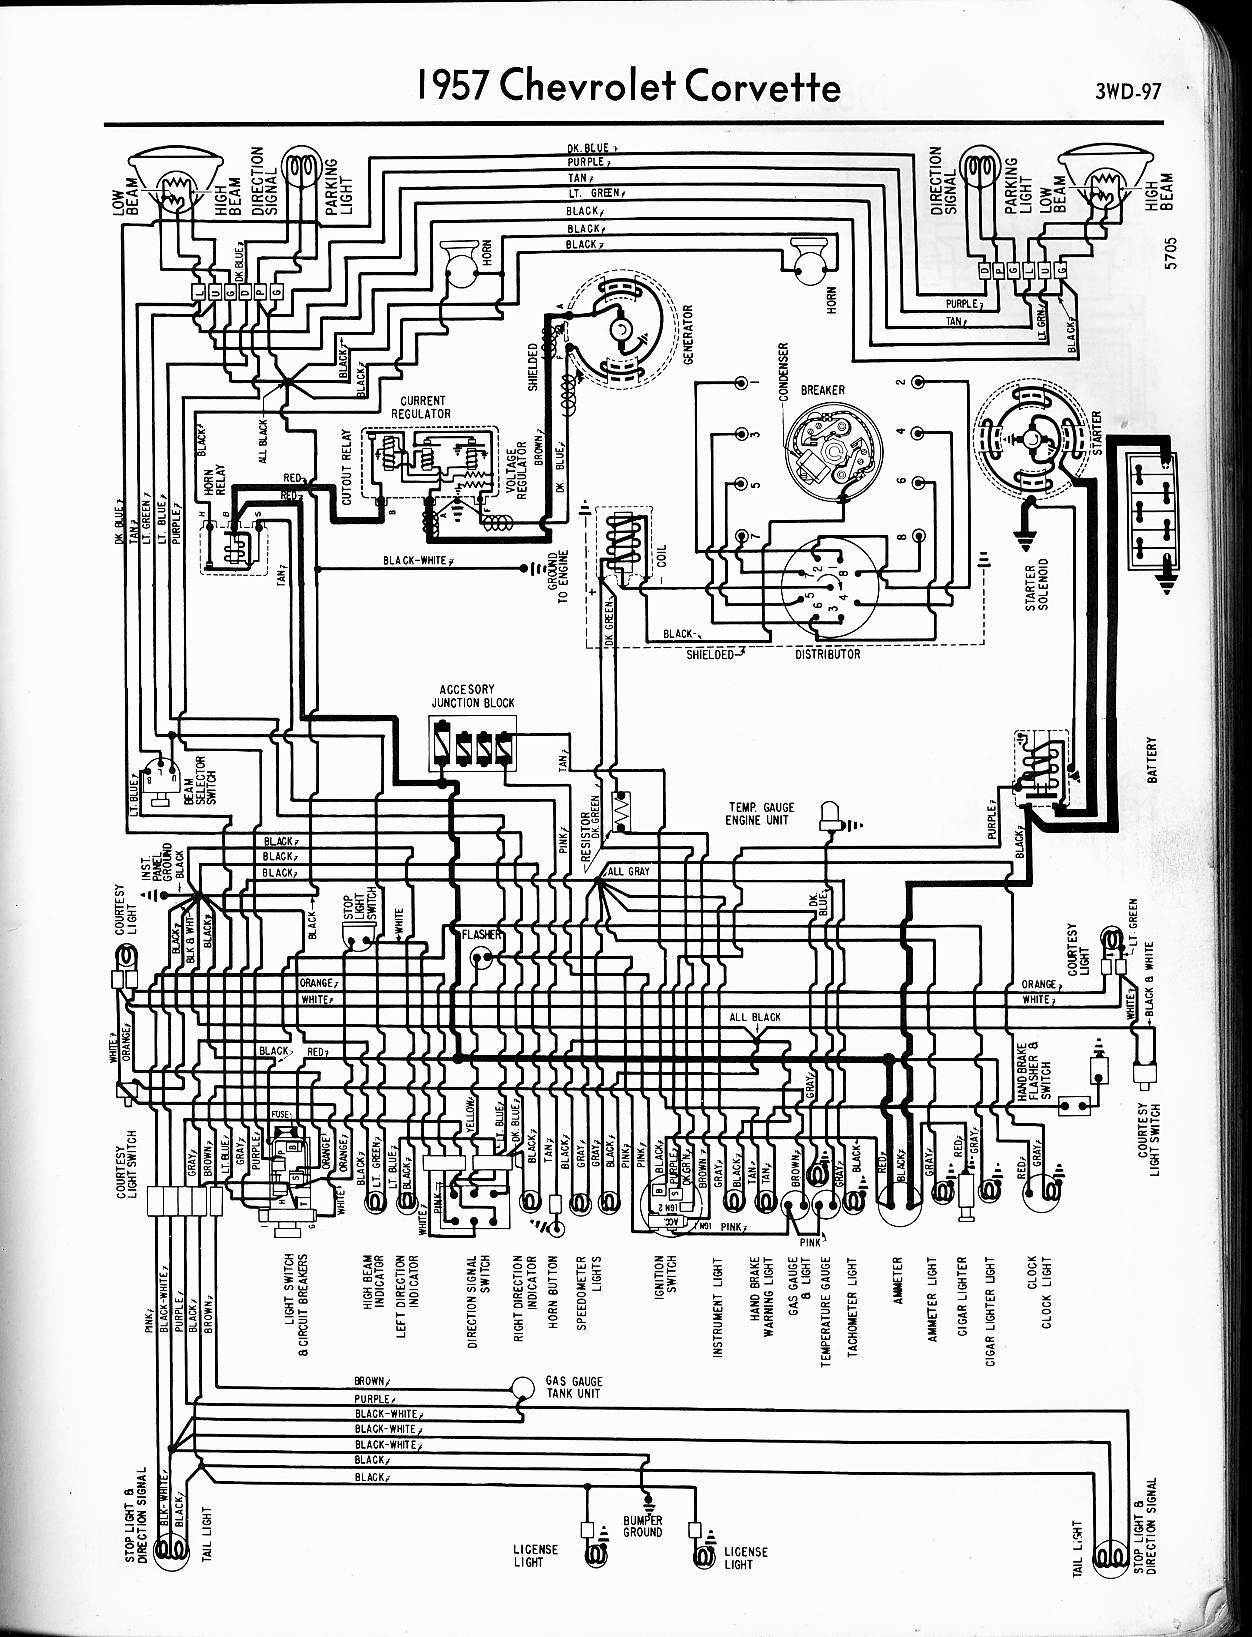 1960 pontiac wiring diagram wiring diagram todays1955 pontiac wiring diagram wiring diagrams 1972 pontiac wiring diagram 1960 pontiac wiring diagram